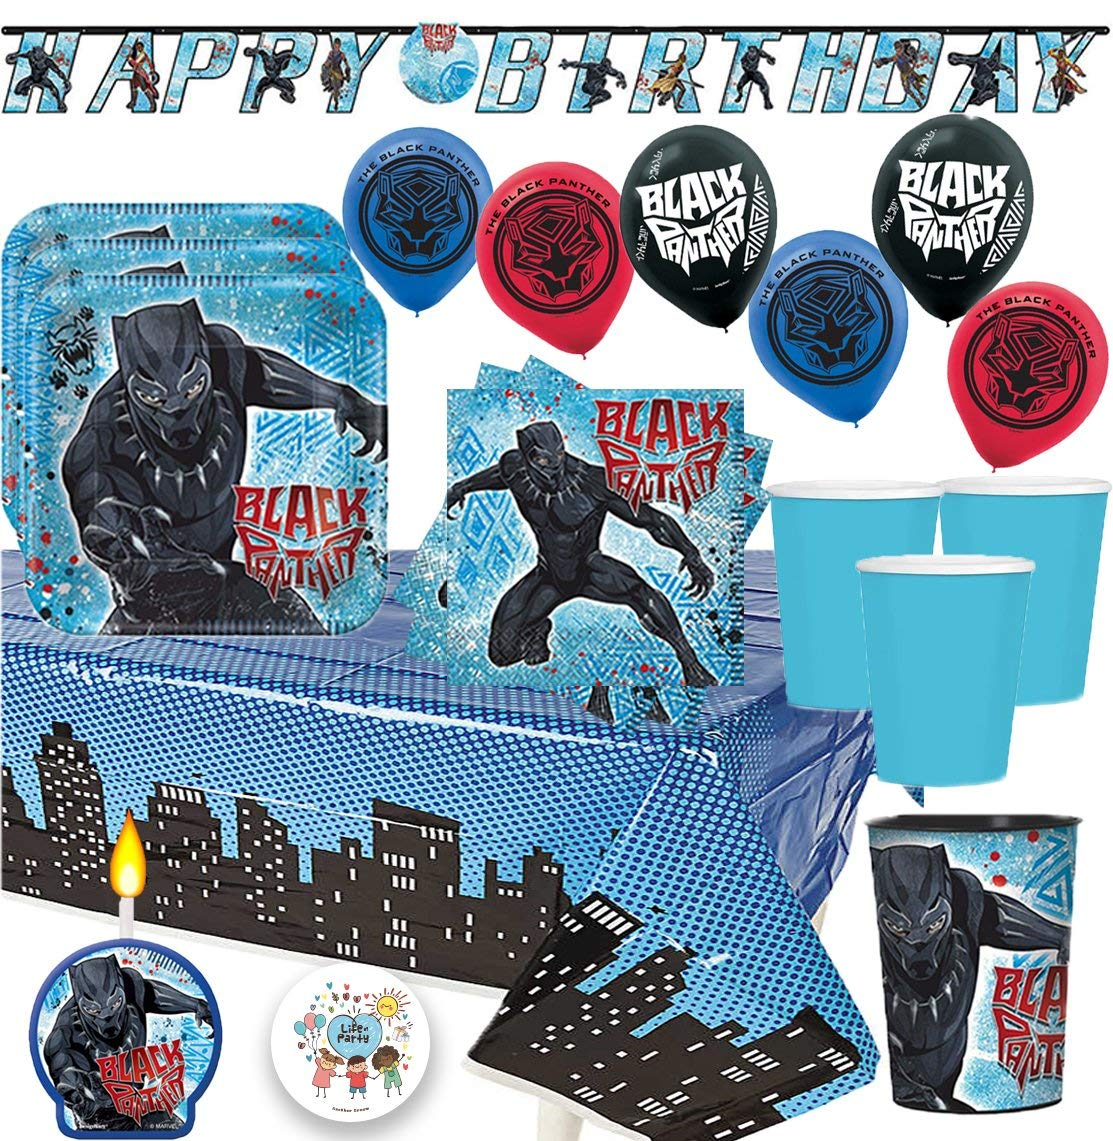 Another Dream's Black Panther MEGA Birthday Party Pack for 16 Guests Includes Plates, Cups, Napkins, Tablecover, Table Decorations, Happy Birthday Banner, 6 Balloons, Party Pin and Birthday Candle!